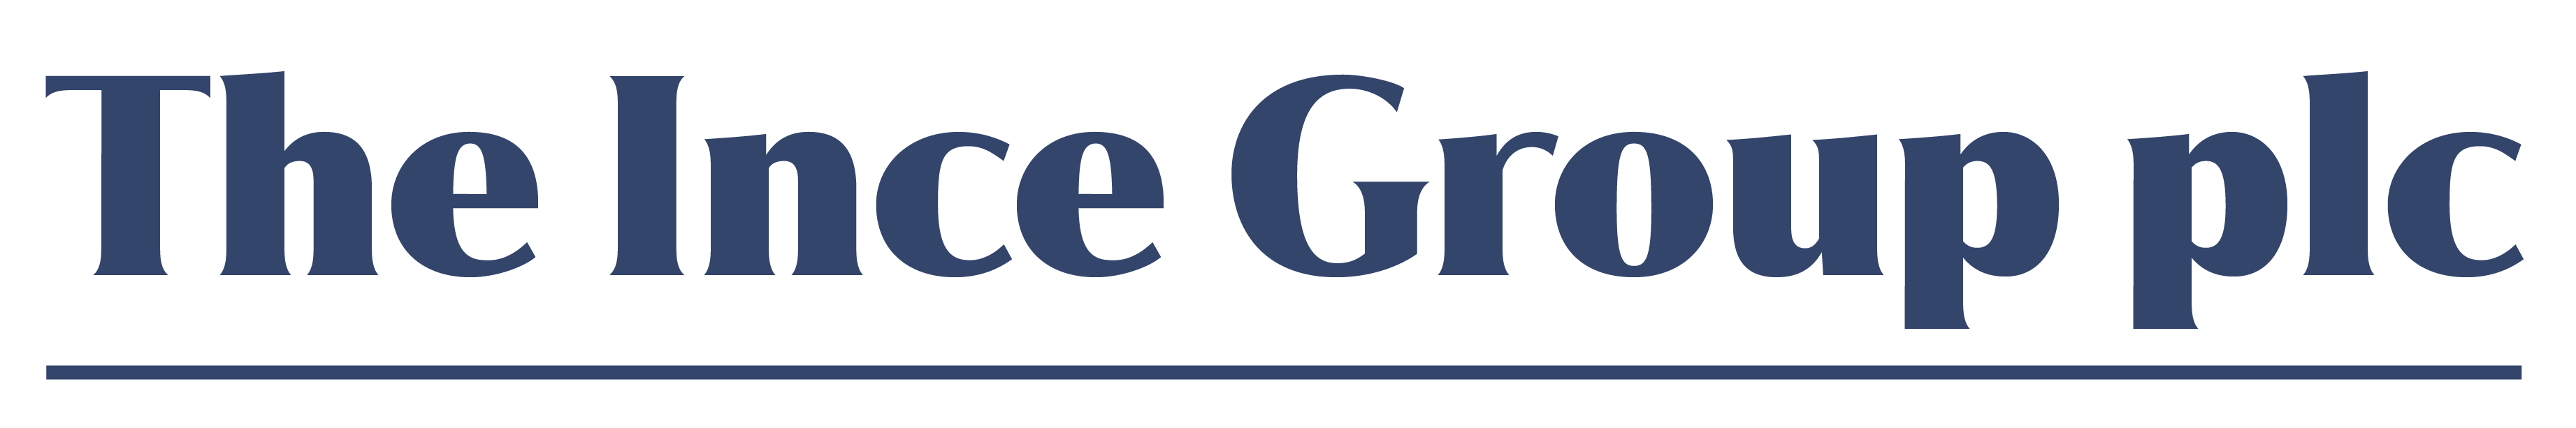 The Ince Group plc